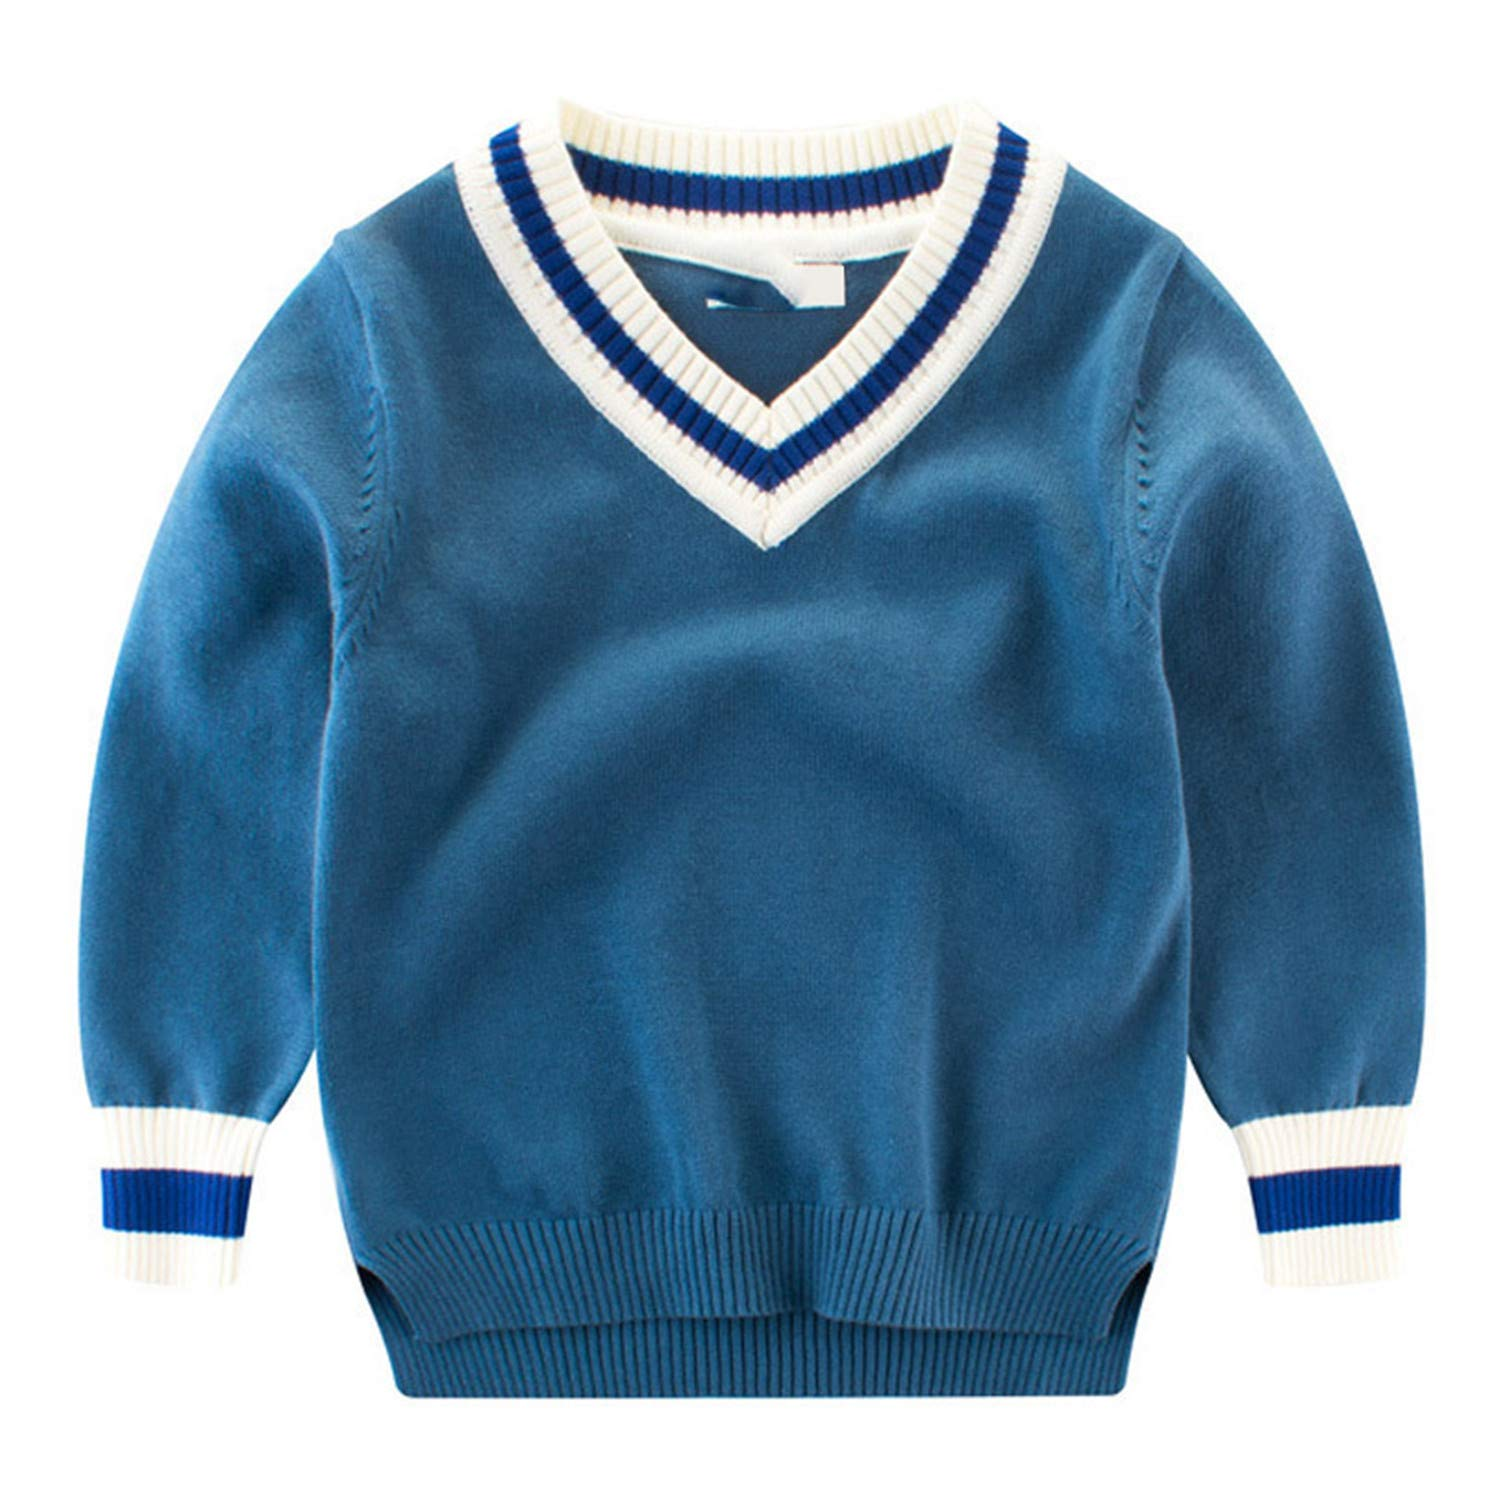 05dd0d64f Amazon.com  Huainsta Pullover V-Neck Knitted Sweater Kids Clothes ...